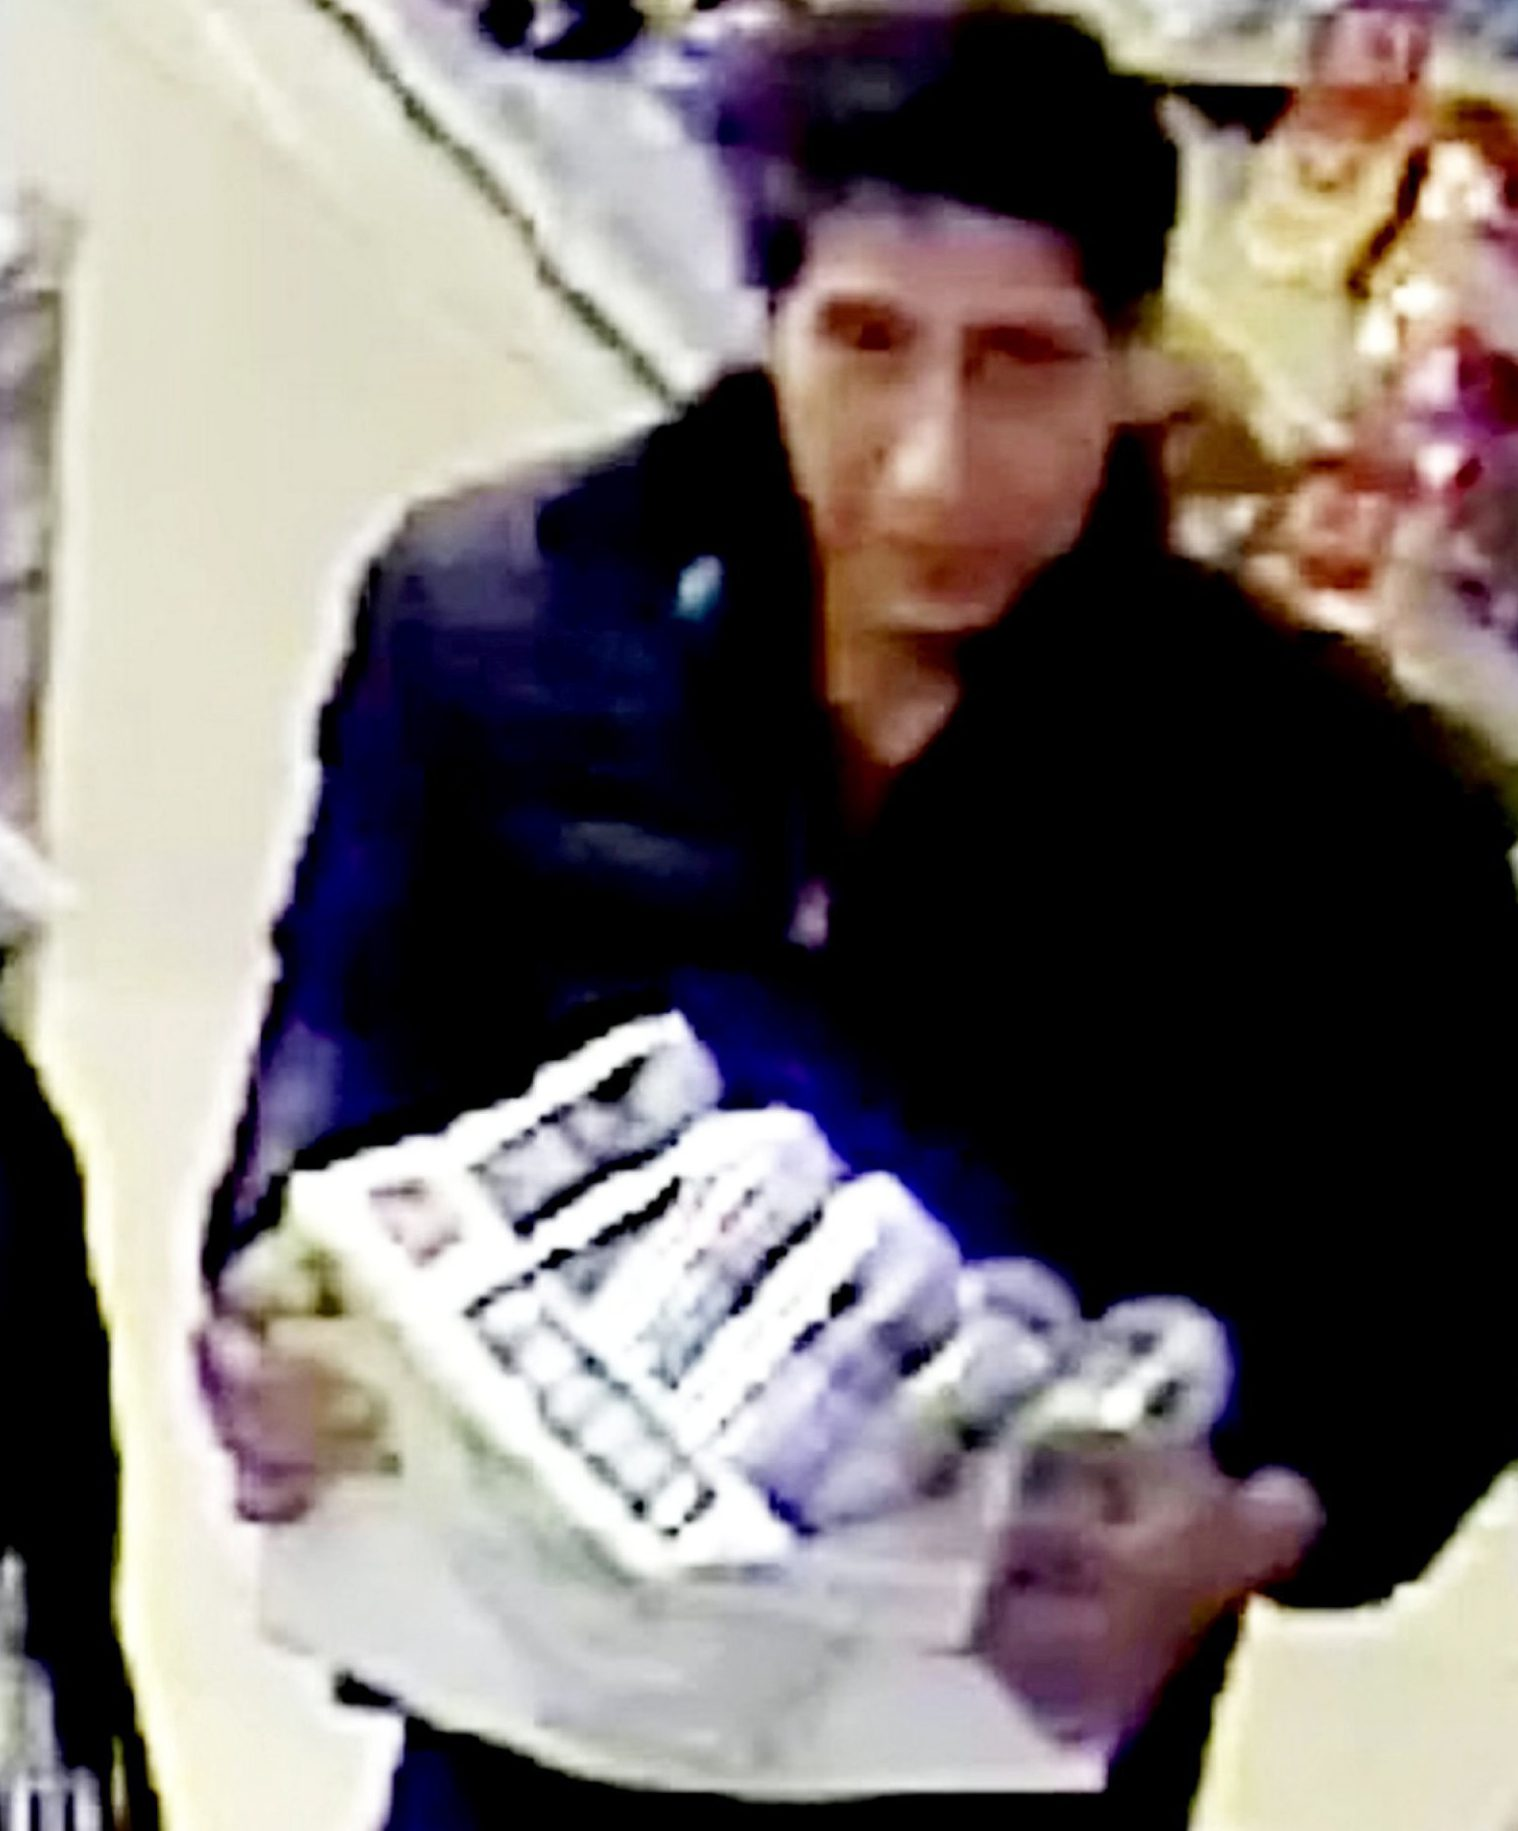 Police have shared a CCTV image of a very unfriendly bloke swiping beer from a restaurant - and he's a spitting image of ?Friends? character Ross Geller. See SWNS story SWLEfriends. Officers shared the CCTV still of the man, who is the double of Friends actor David Schwimmer, clutching a crate of beer. Within minutes, fans of the 90s sitcom had bombarded Blackpool Police's Facebook post with jokes inspired by show. Police later said Schwimmer was not in the UK at the time of the offence.